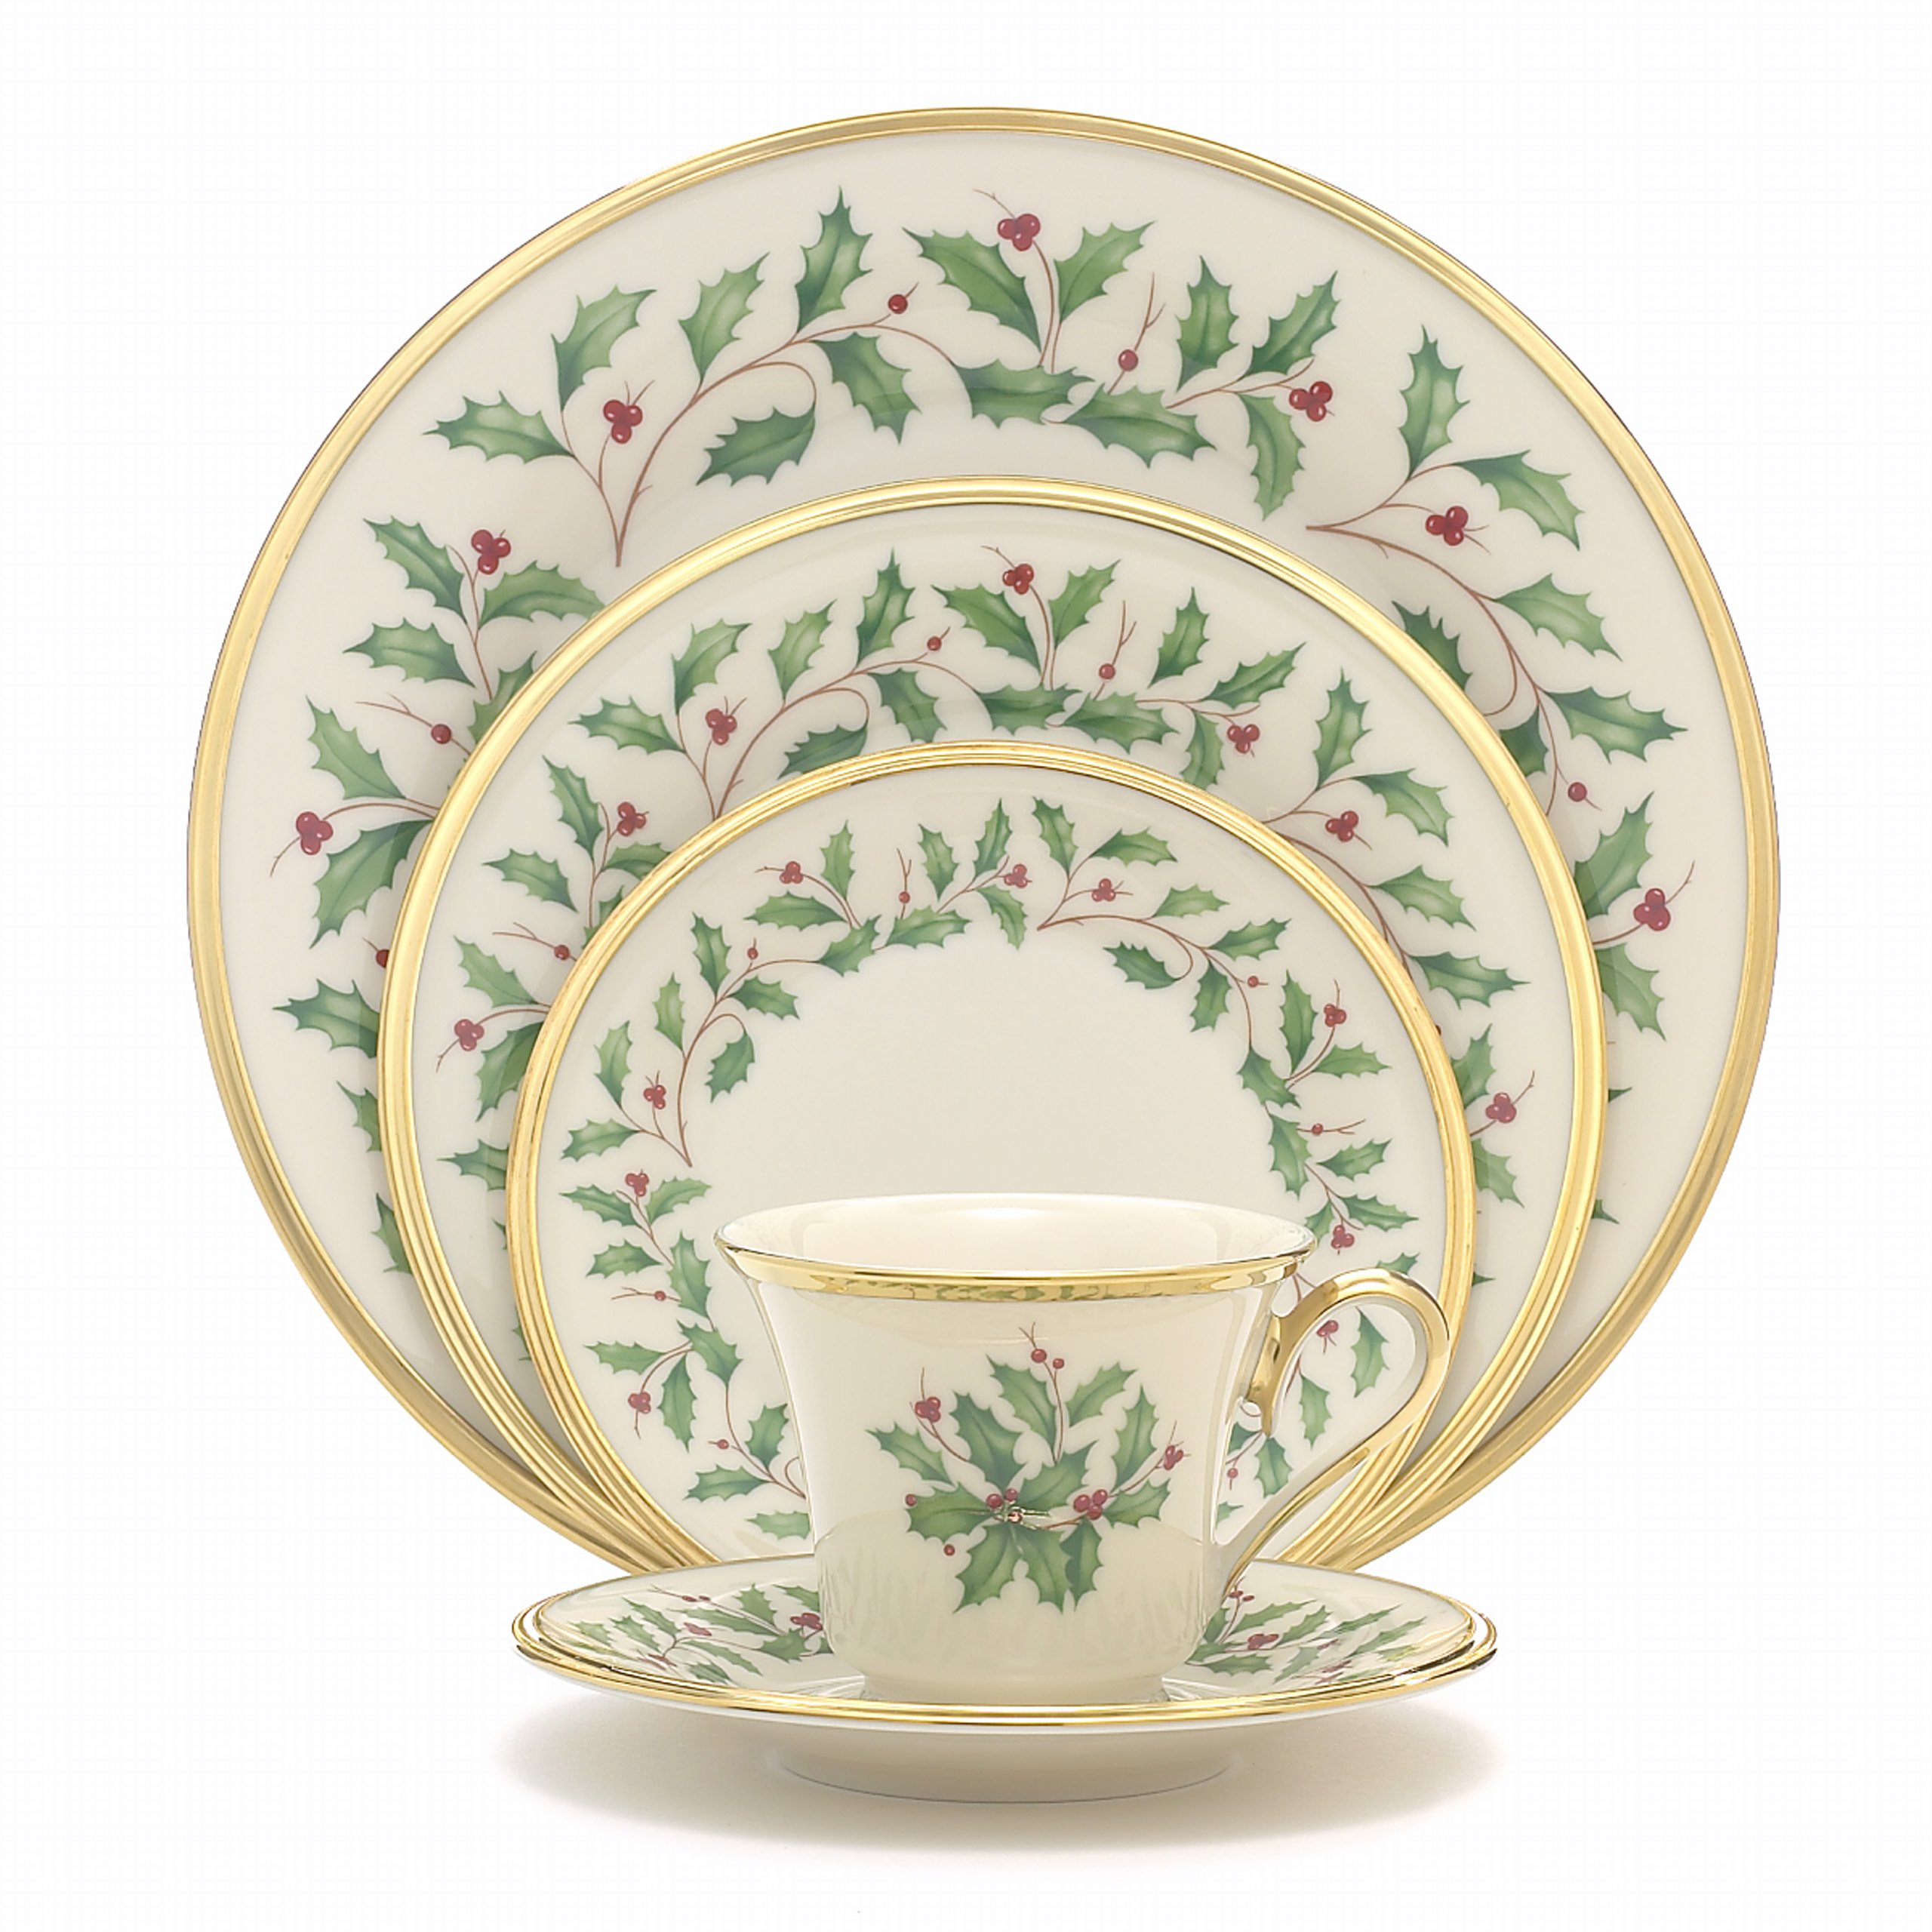 Lenox Holiday 5-Piece Place Setting,Ivory by Lenox (Image #2)